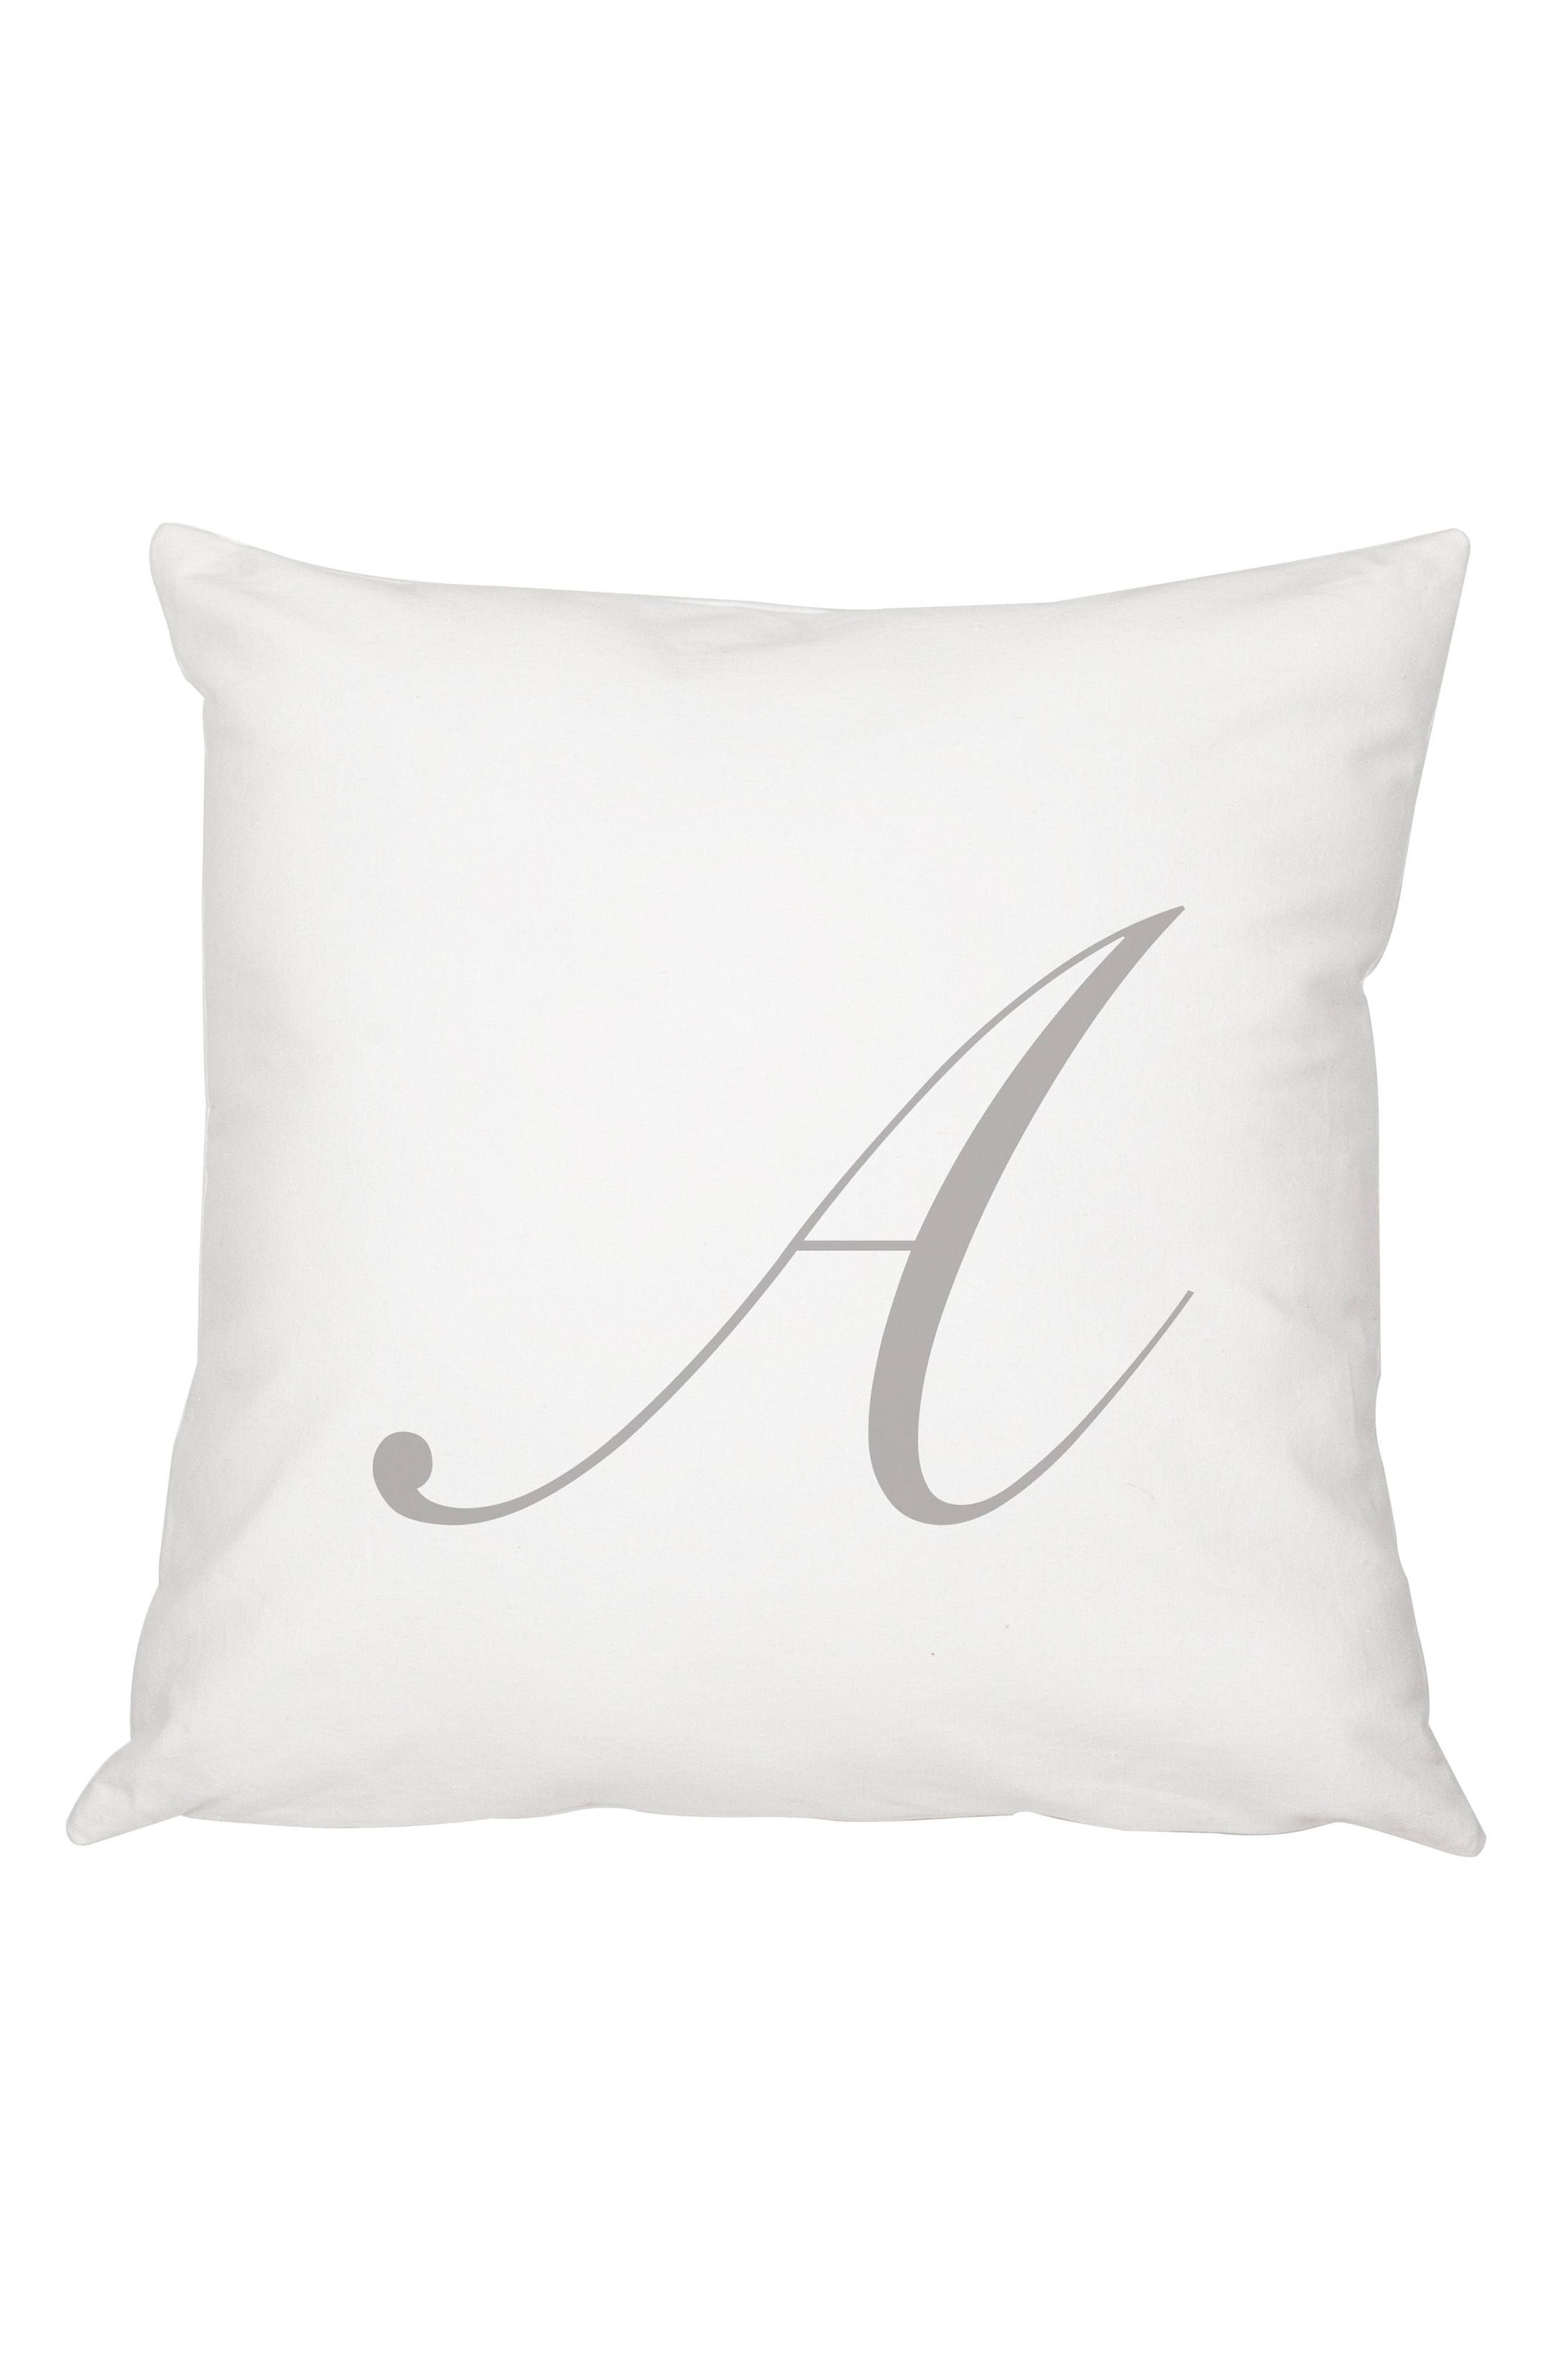 Script Monogram Accent Pillow,                         Main,                         color, 020